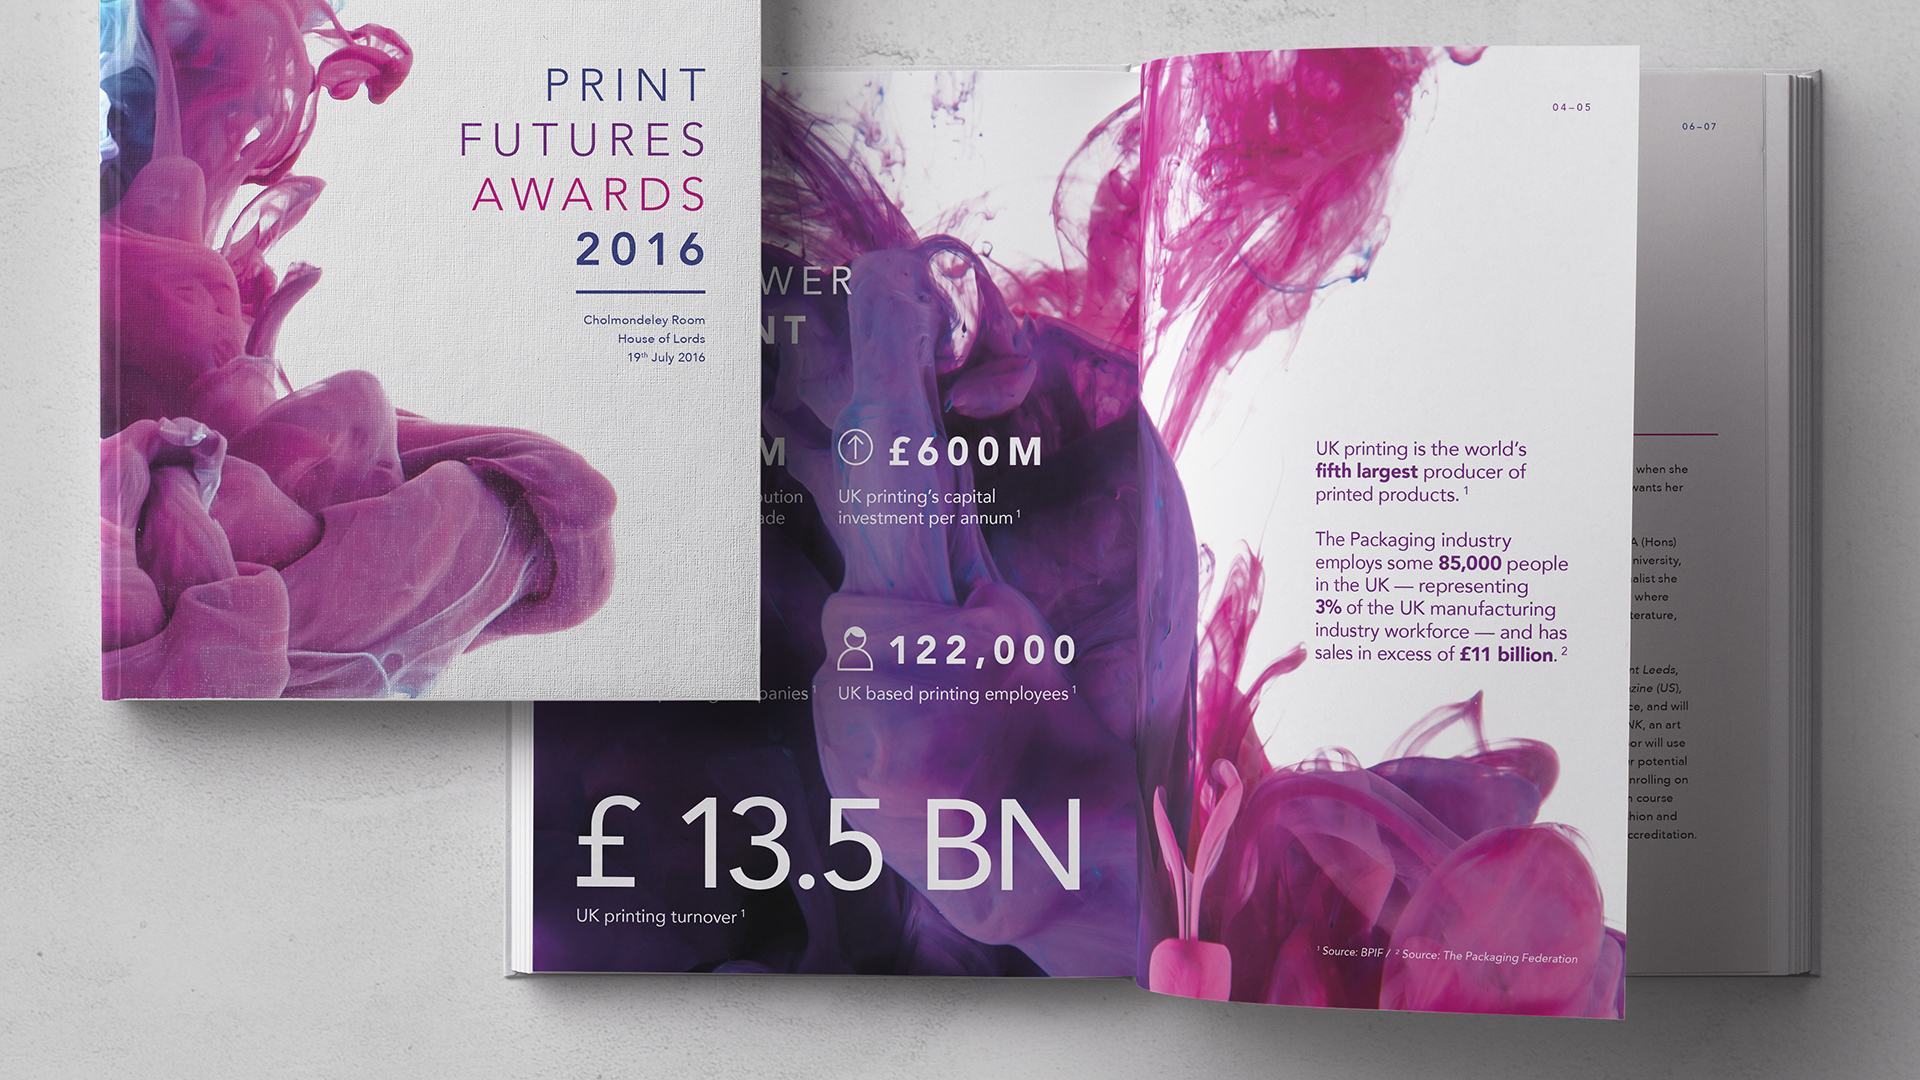 print_futures_awards_5